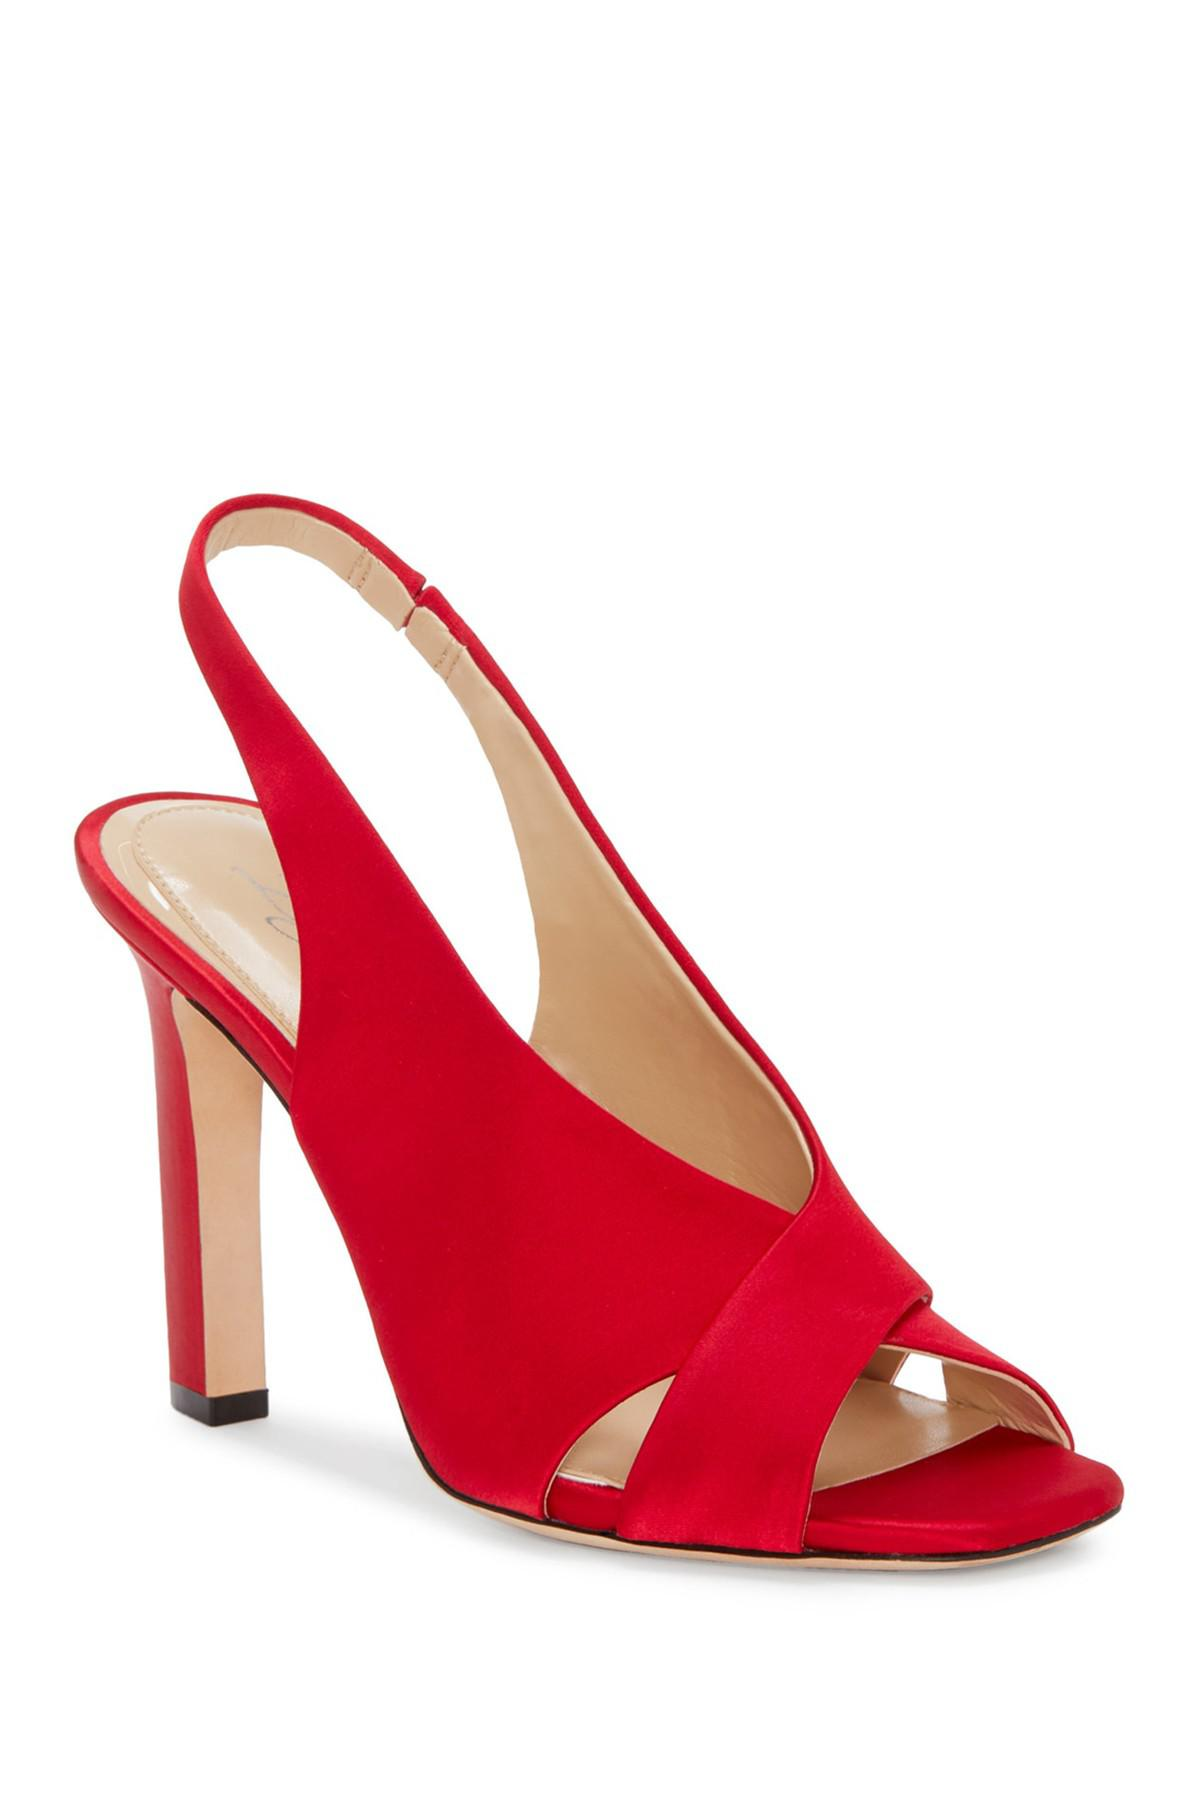 8cd19b38fad Lyst - Imagine Vince Camuto Wrennie Slingback Sandal in Red